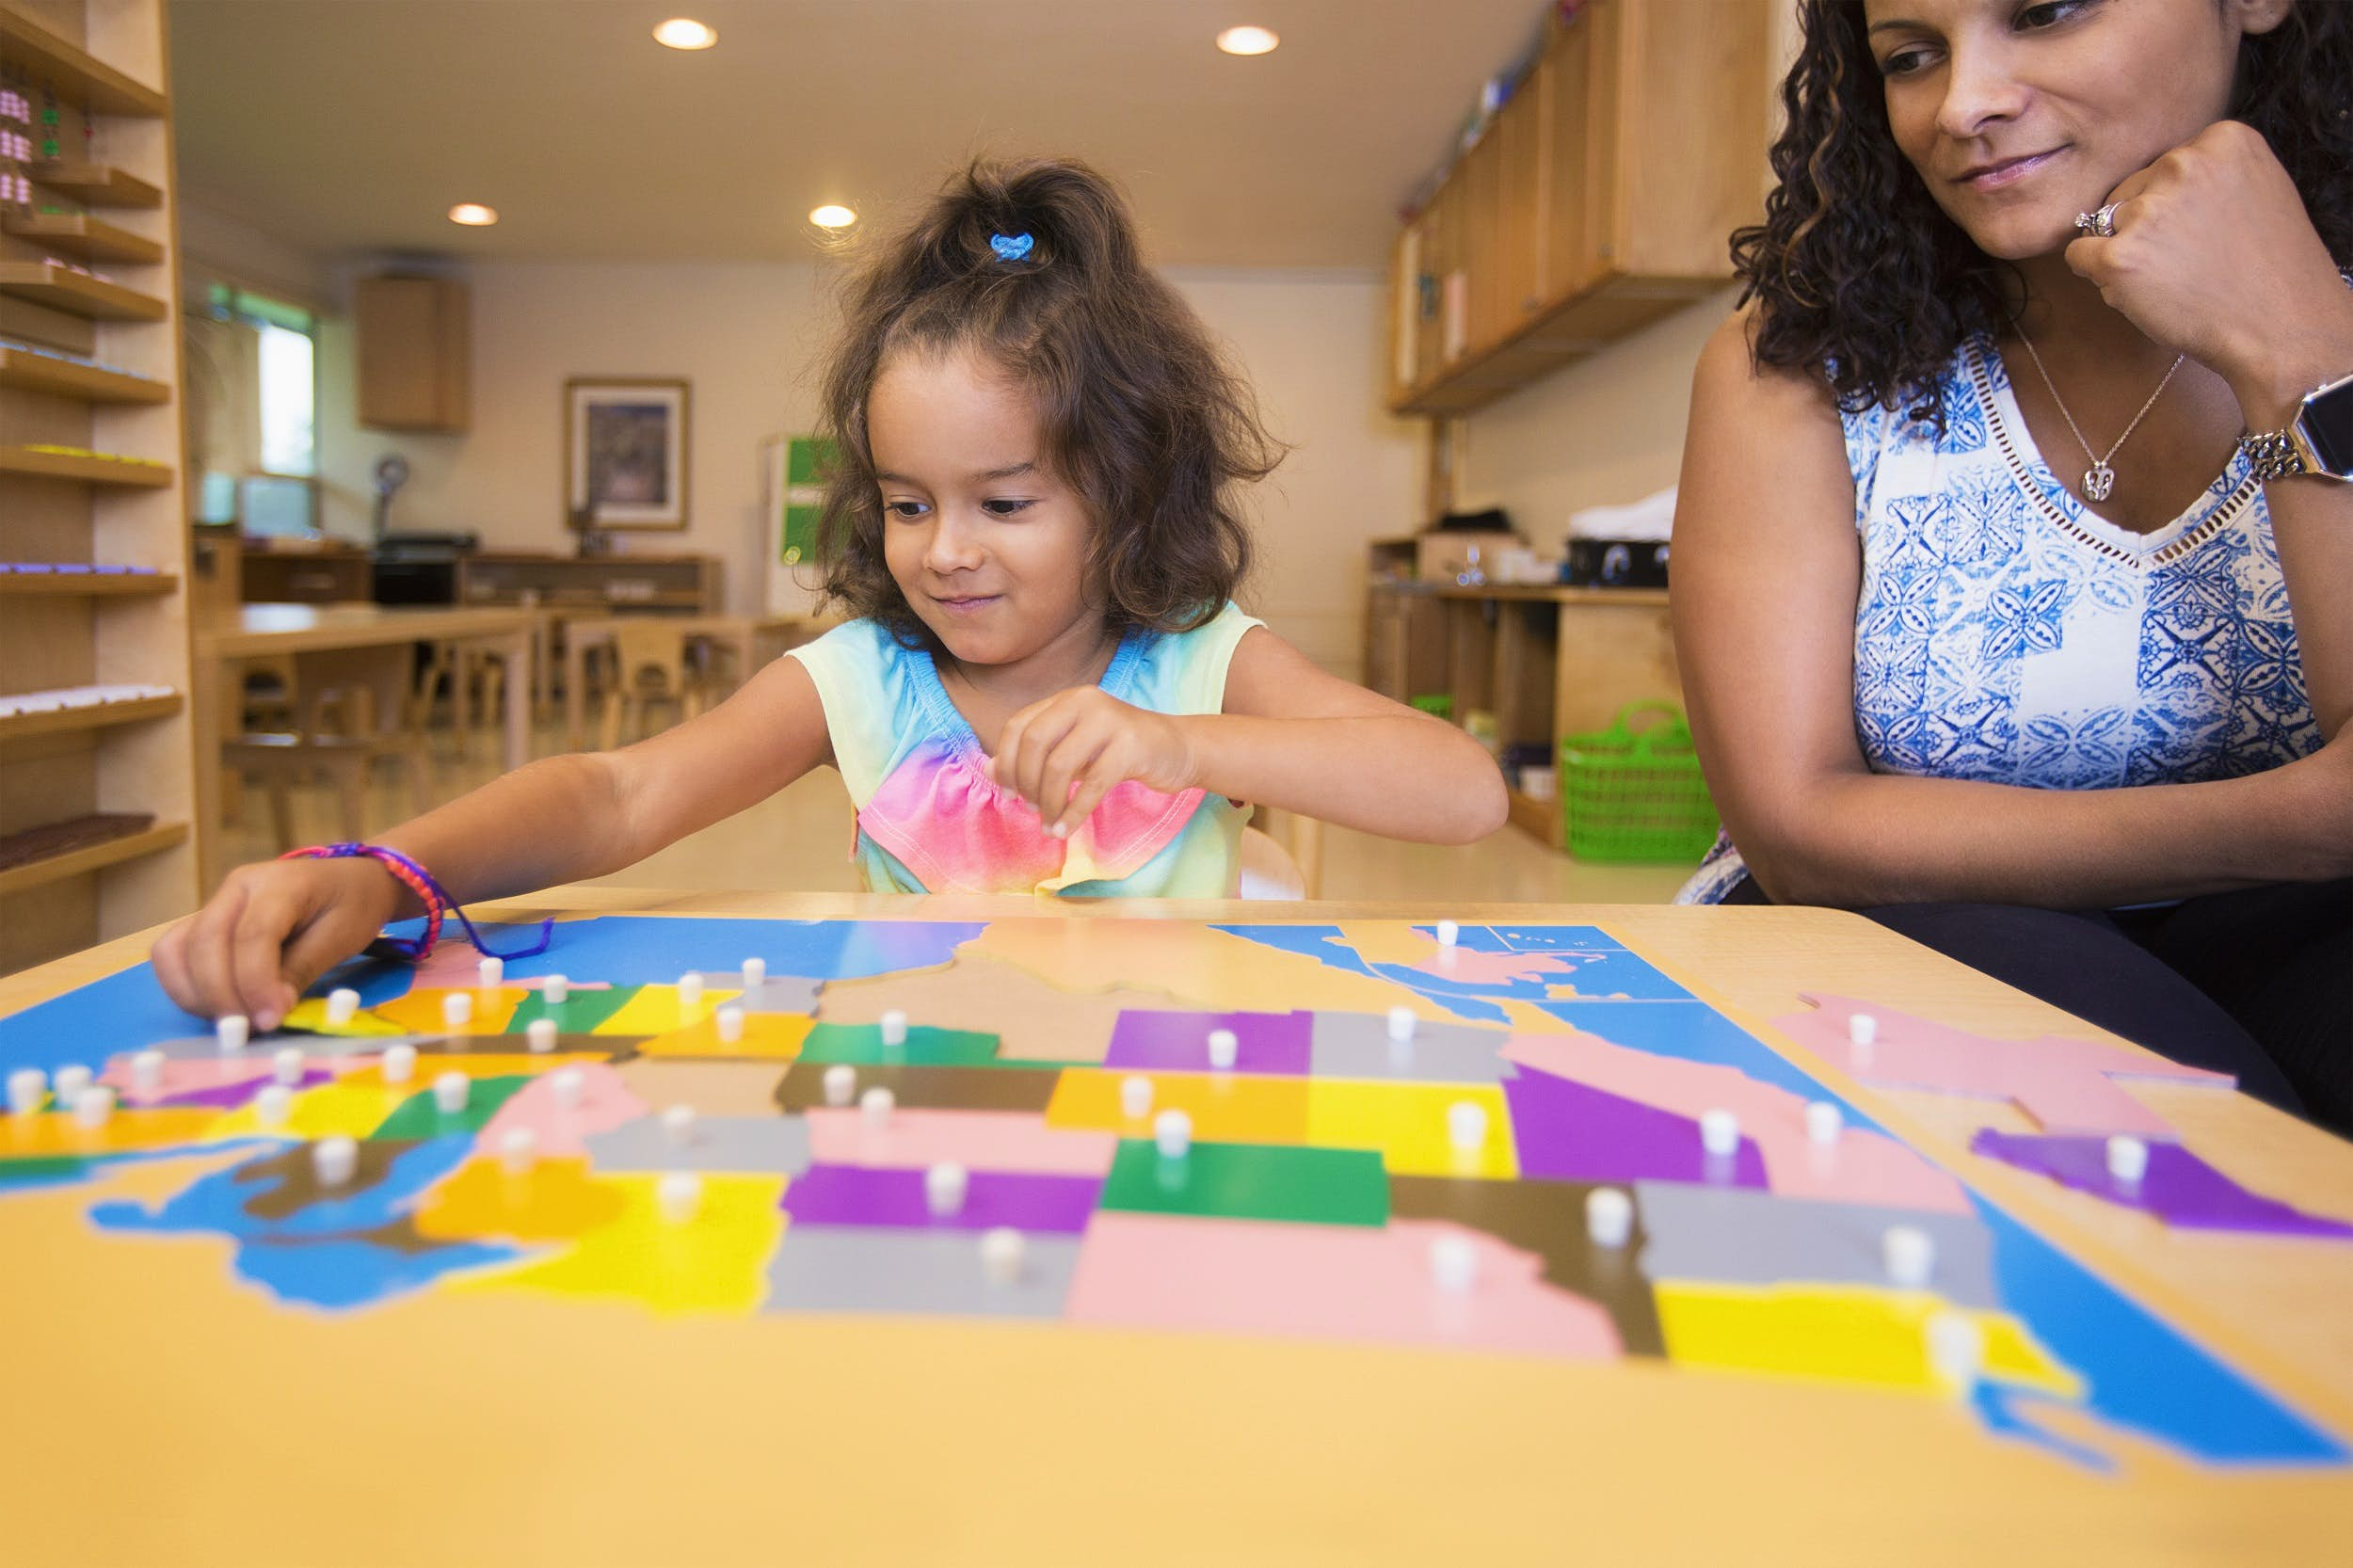 A young girl places the final pieces in a colourful jigsaw of the USA, while an adult watches on